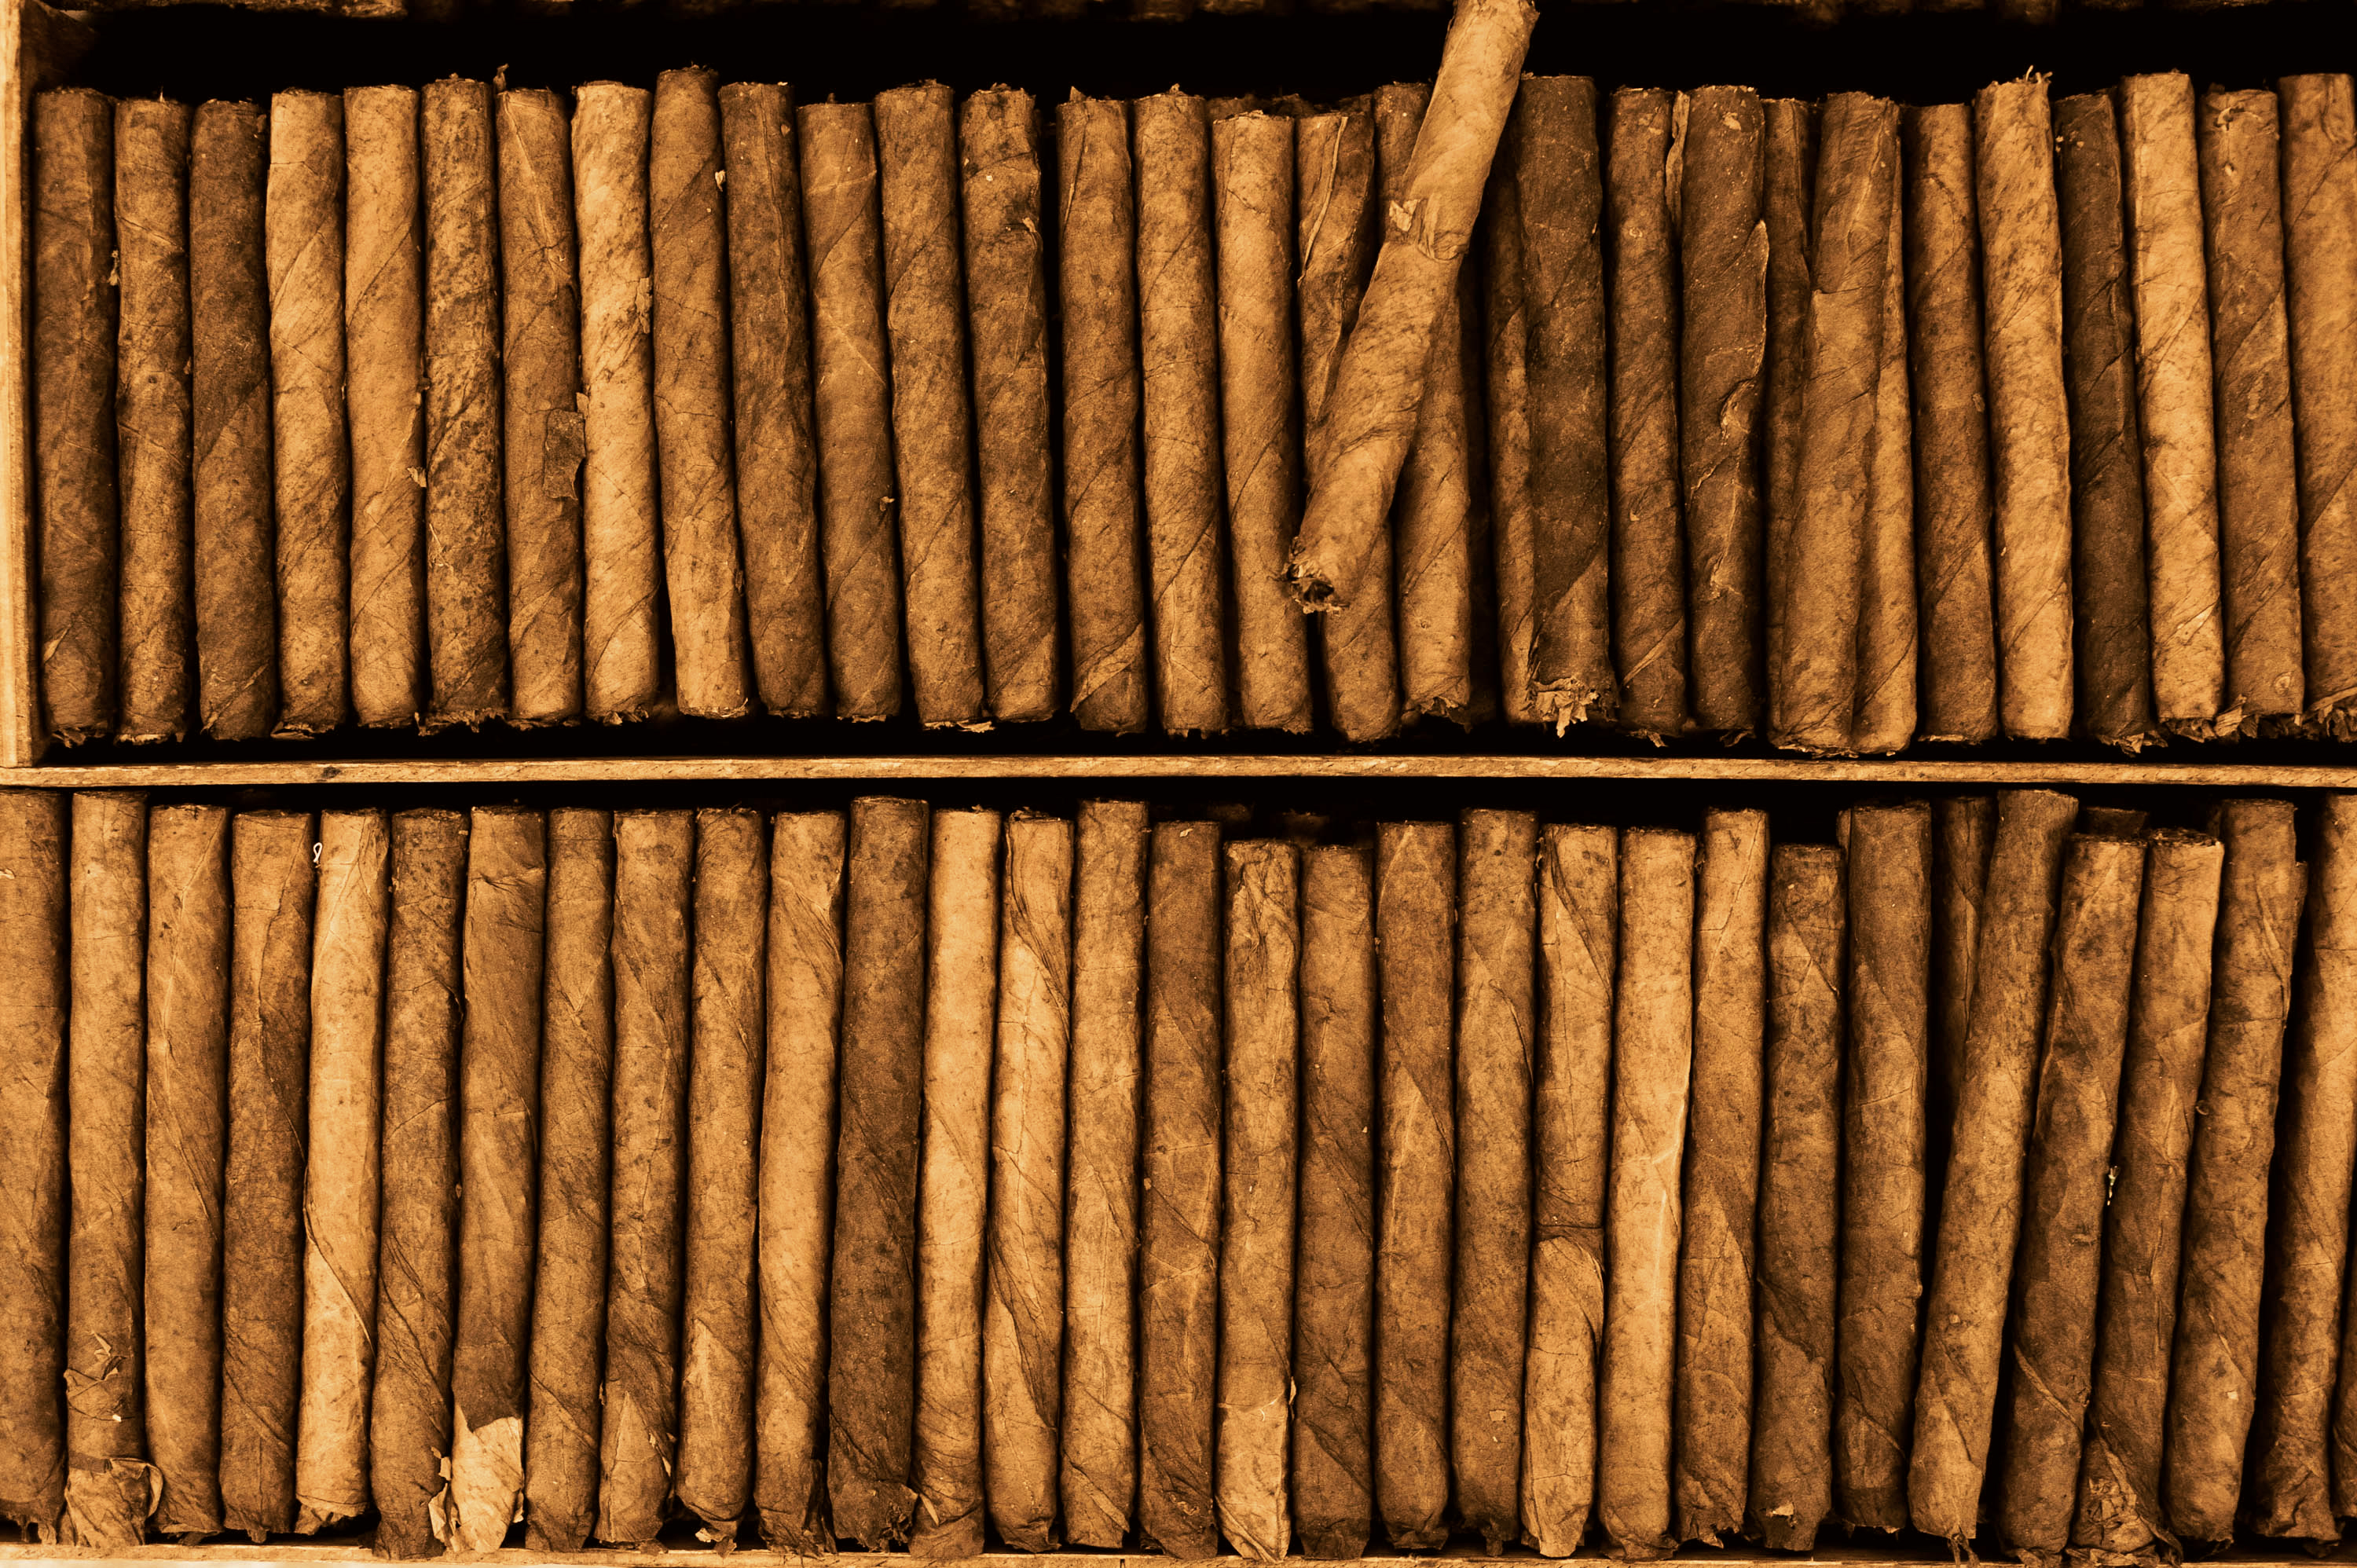 Cigar - Wikimedia Commons